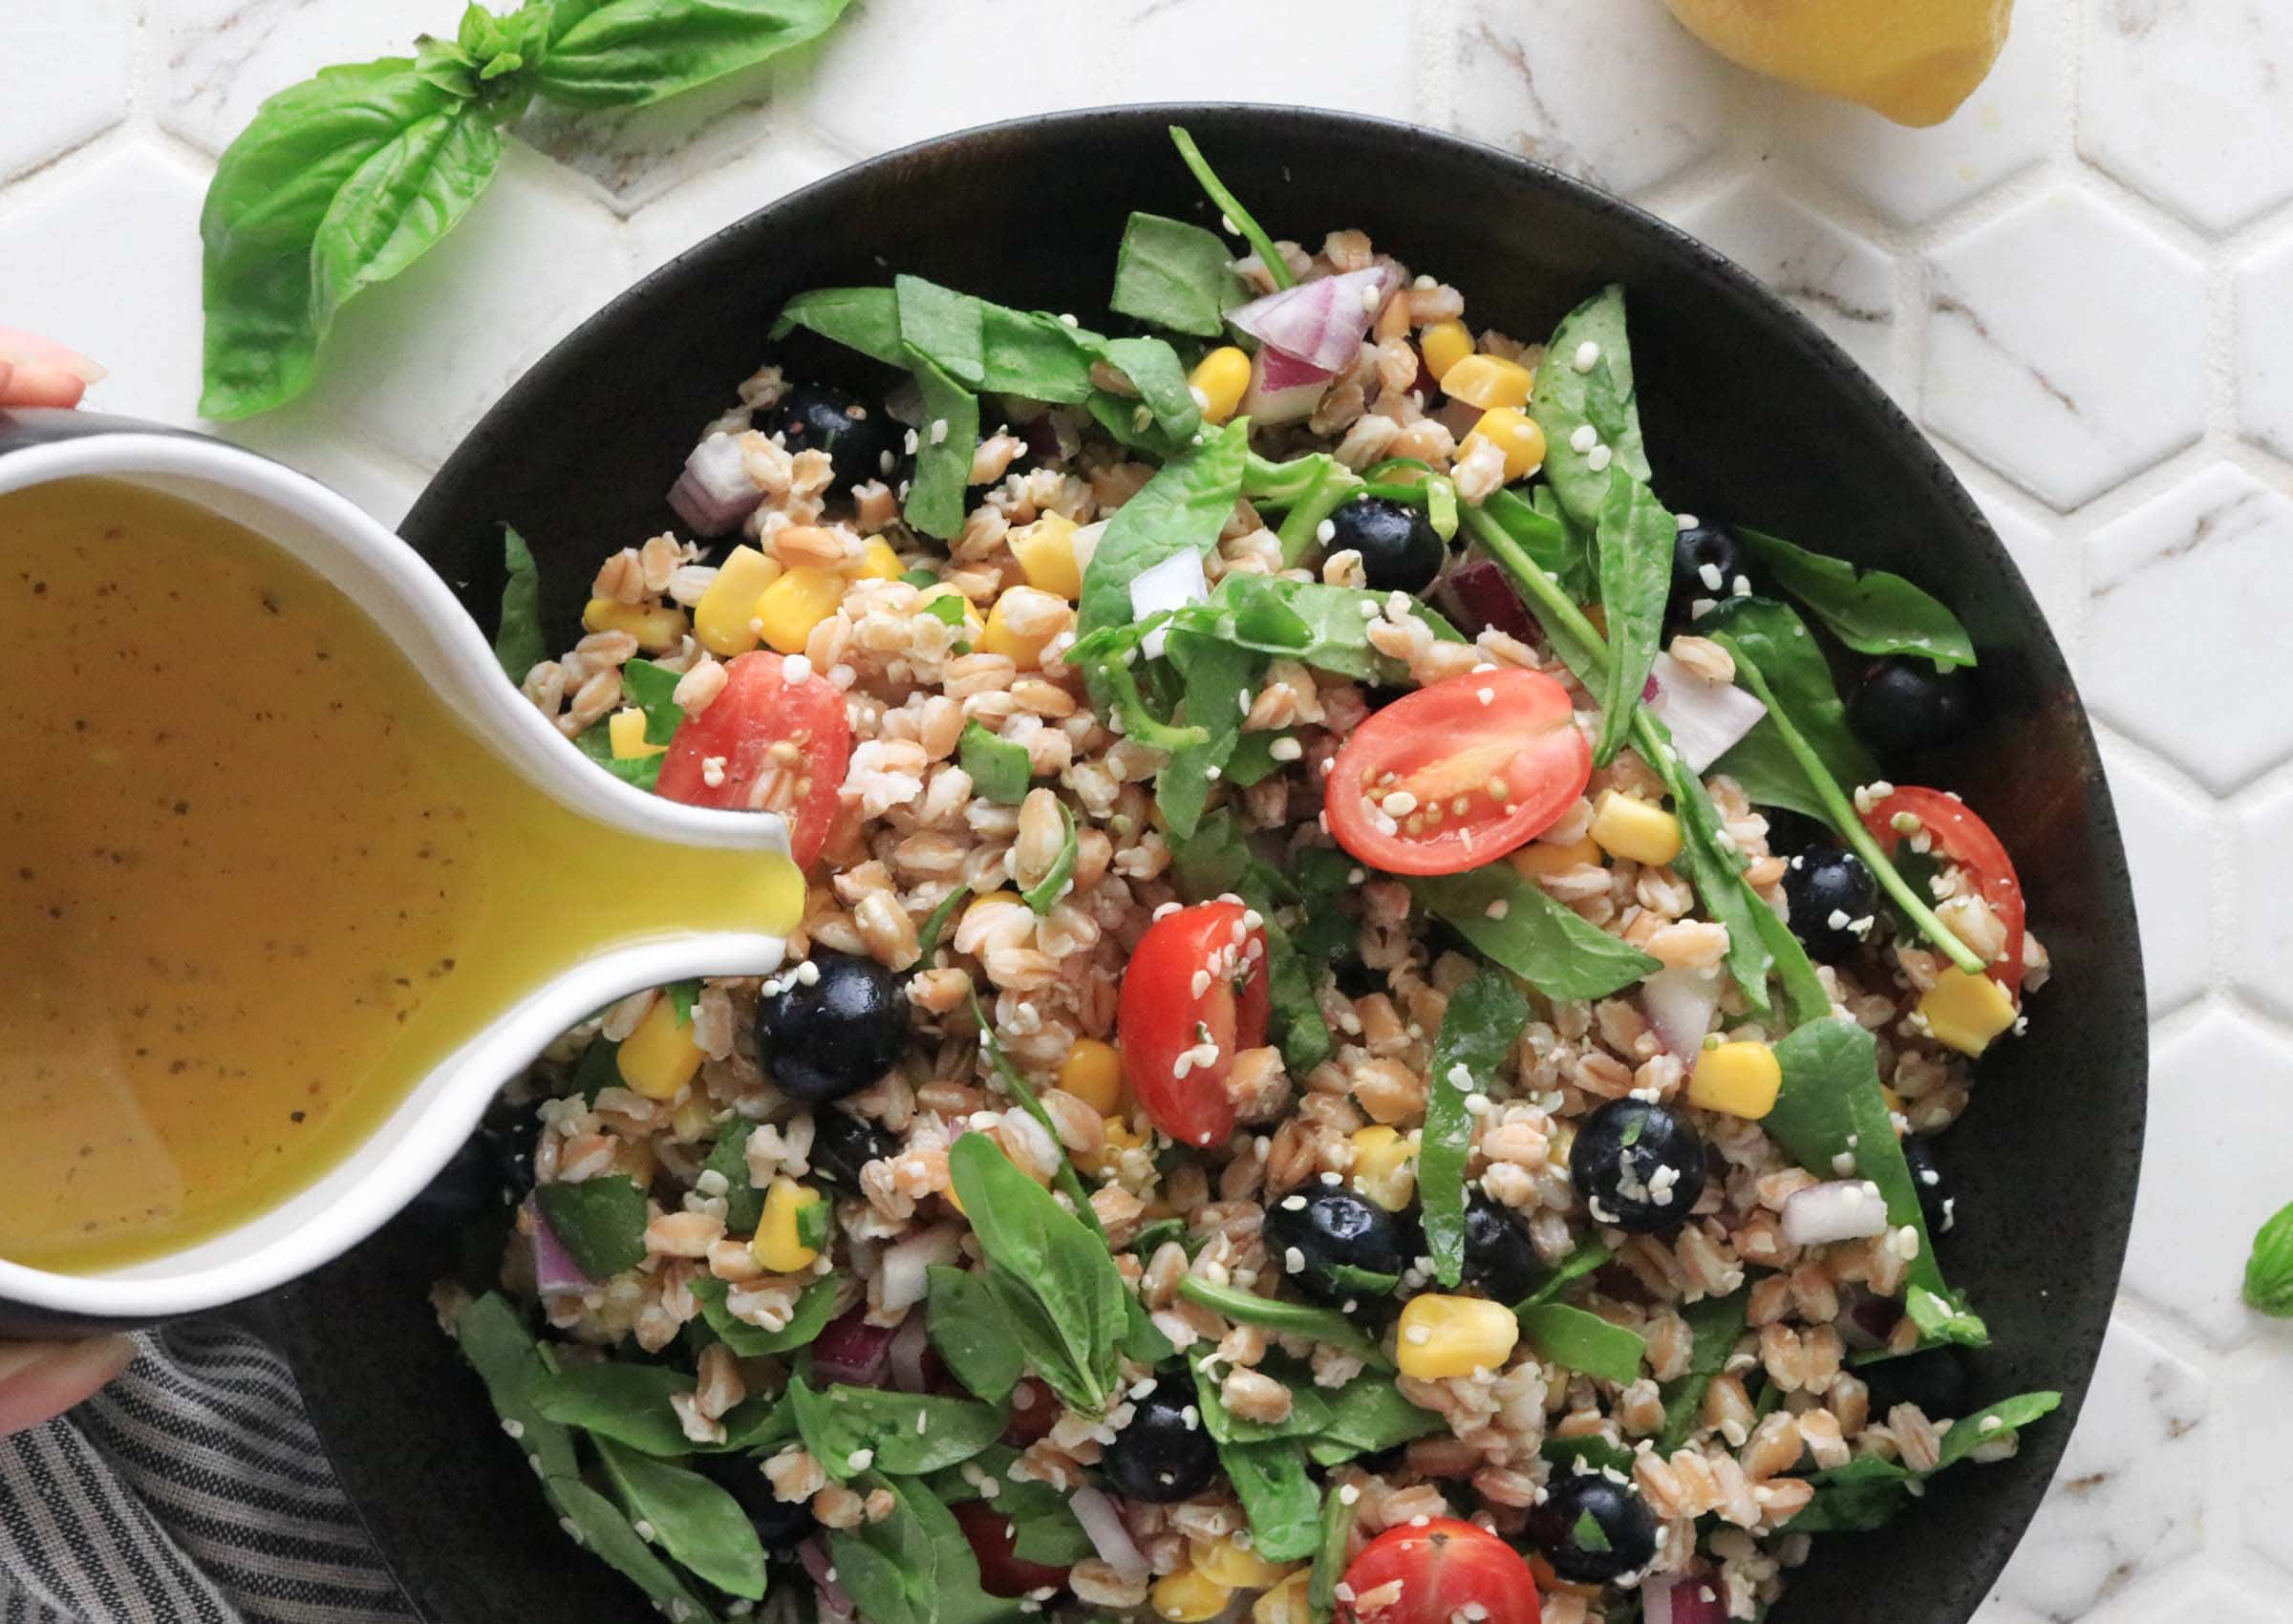 Summer time Farro Salad with Lemon French dressing